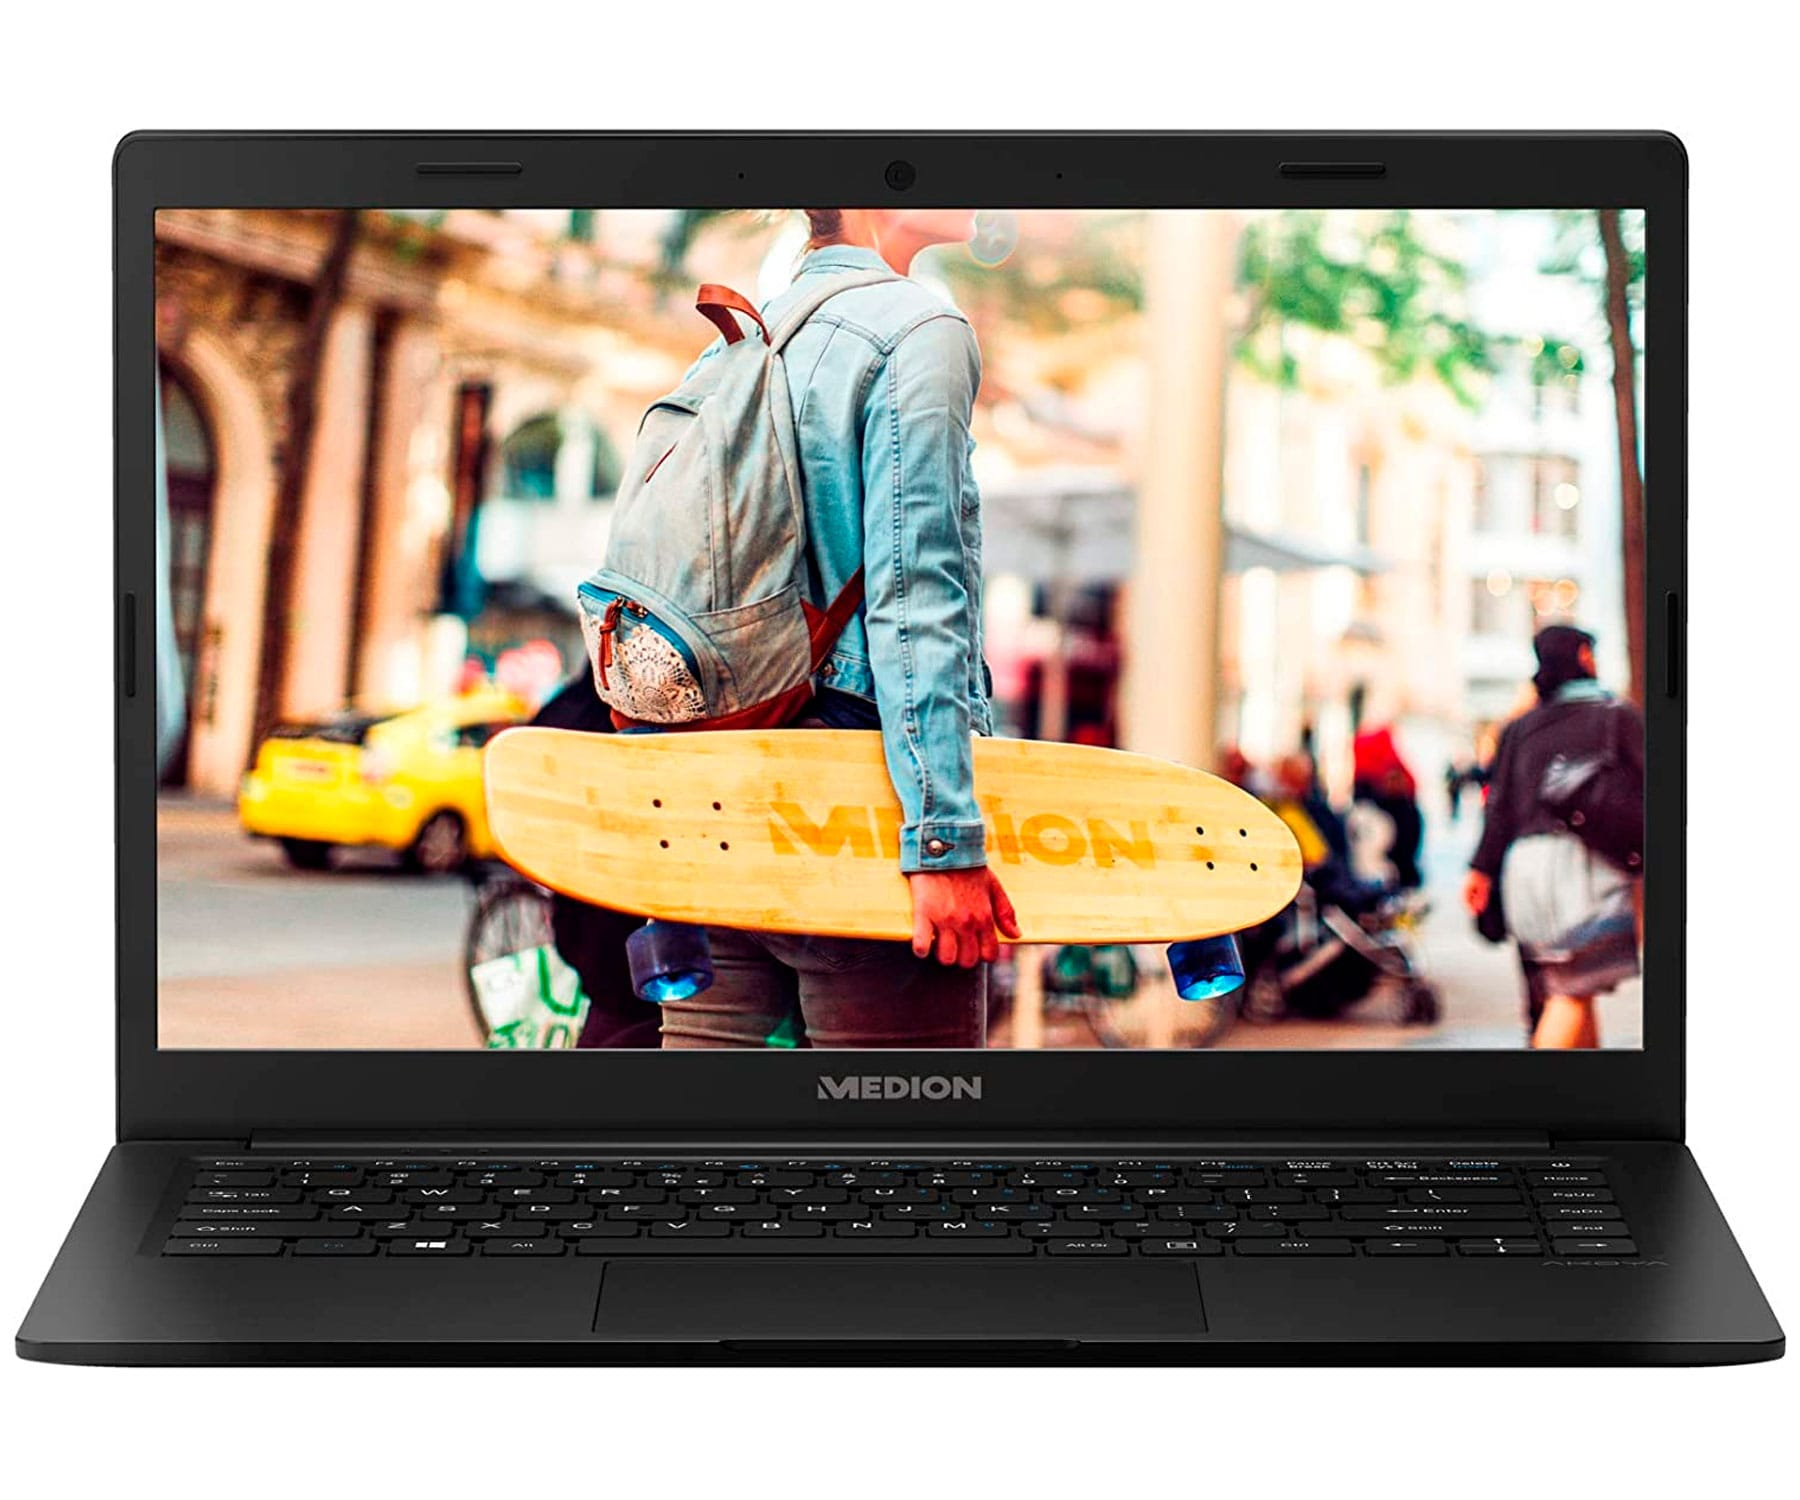 MEDION E4251 MD62003 NEGRO PORTÁTIL 14'' FullHD CEL-N4020 64GB eMMC 4GB RAM WINDOWS 10 HOME